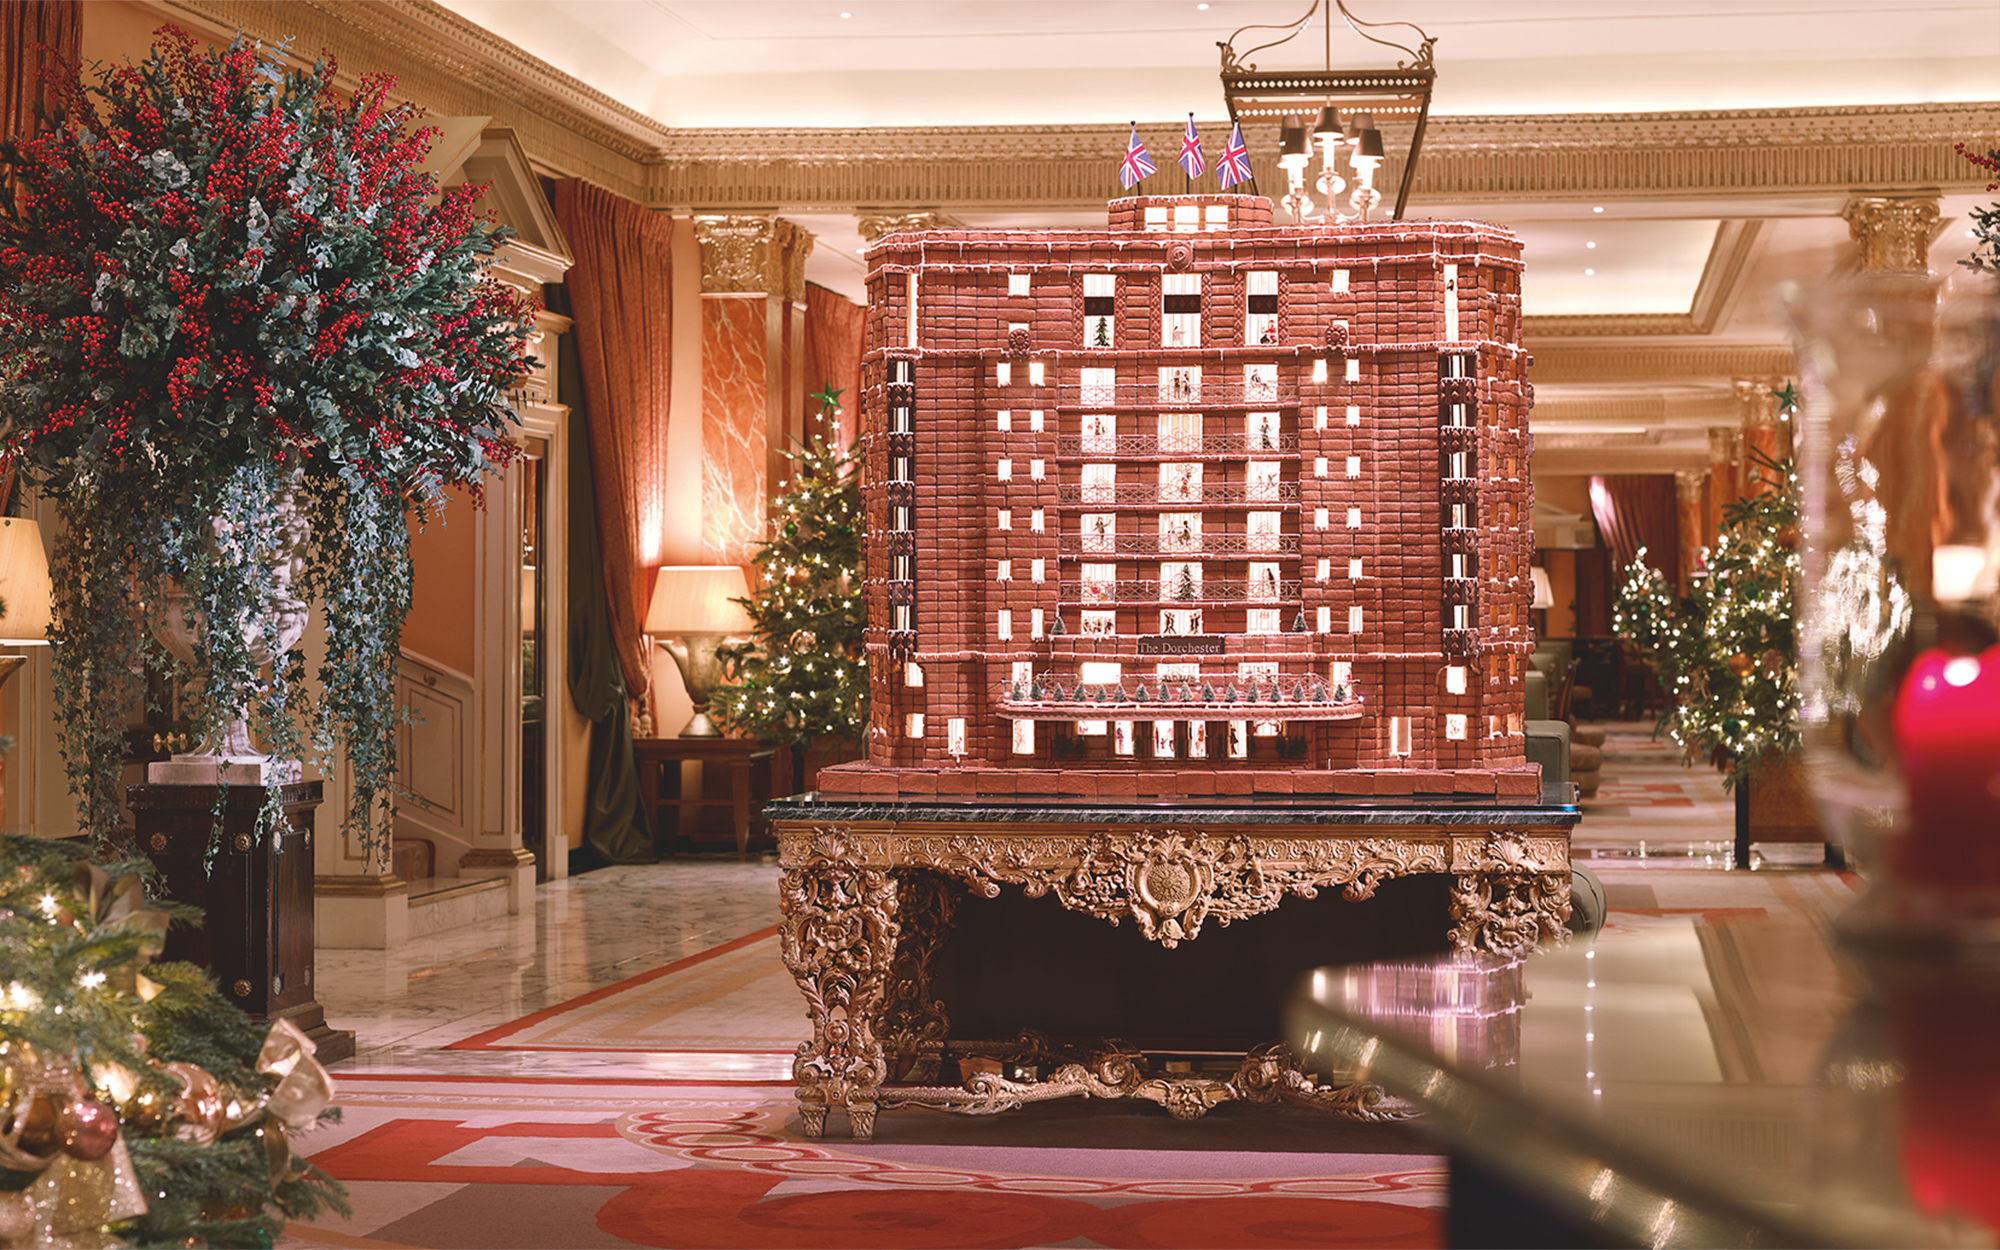 The Best Hotel Gingerbread Houses: The Dorchester, London